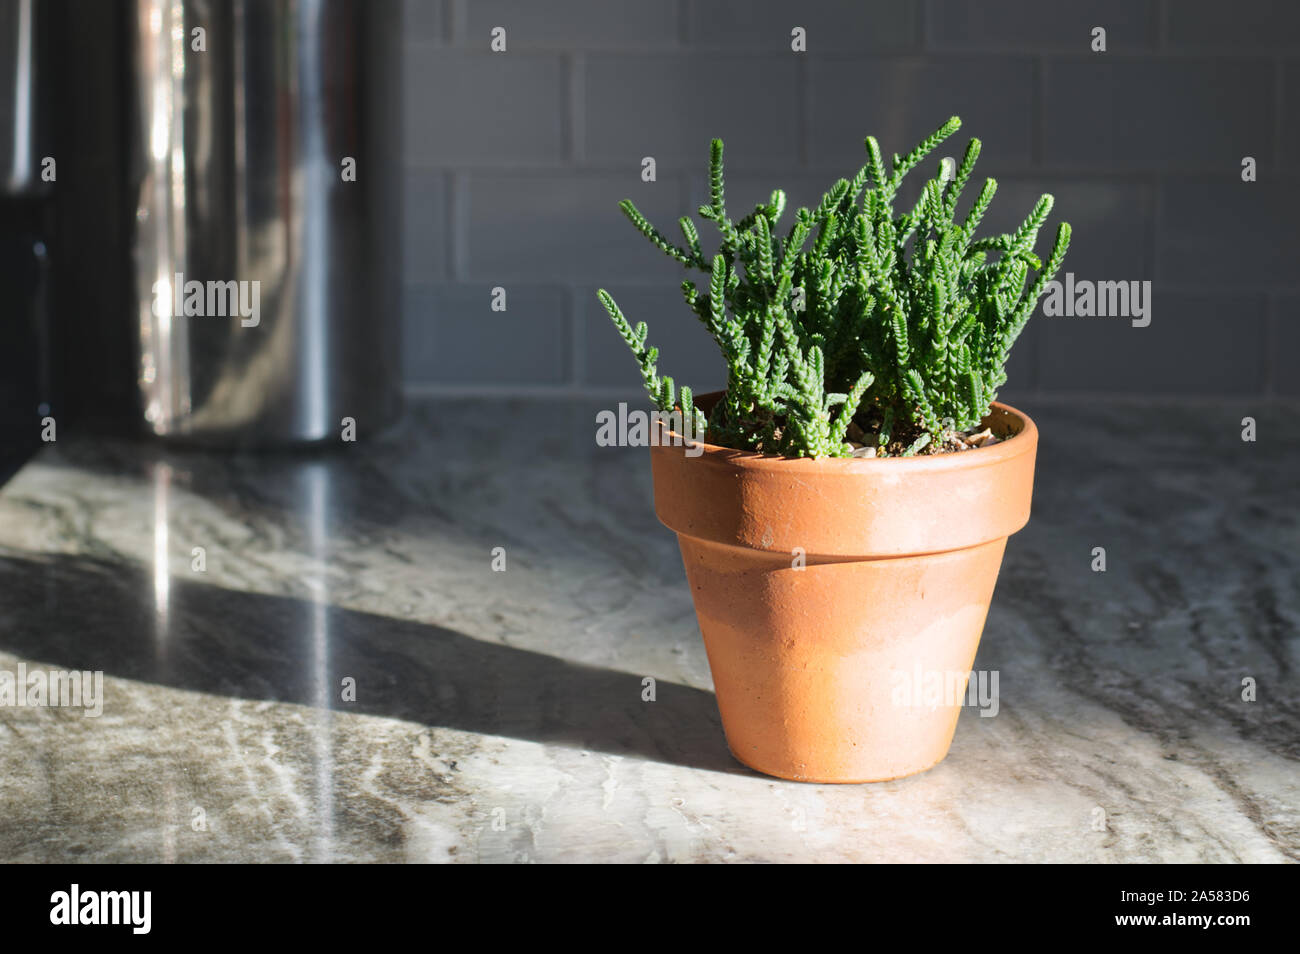 """Crassula Mucossa """"watch link"""" succulent on a grey marble countertop. Stock Photo"""